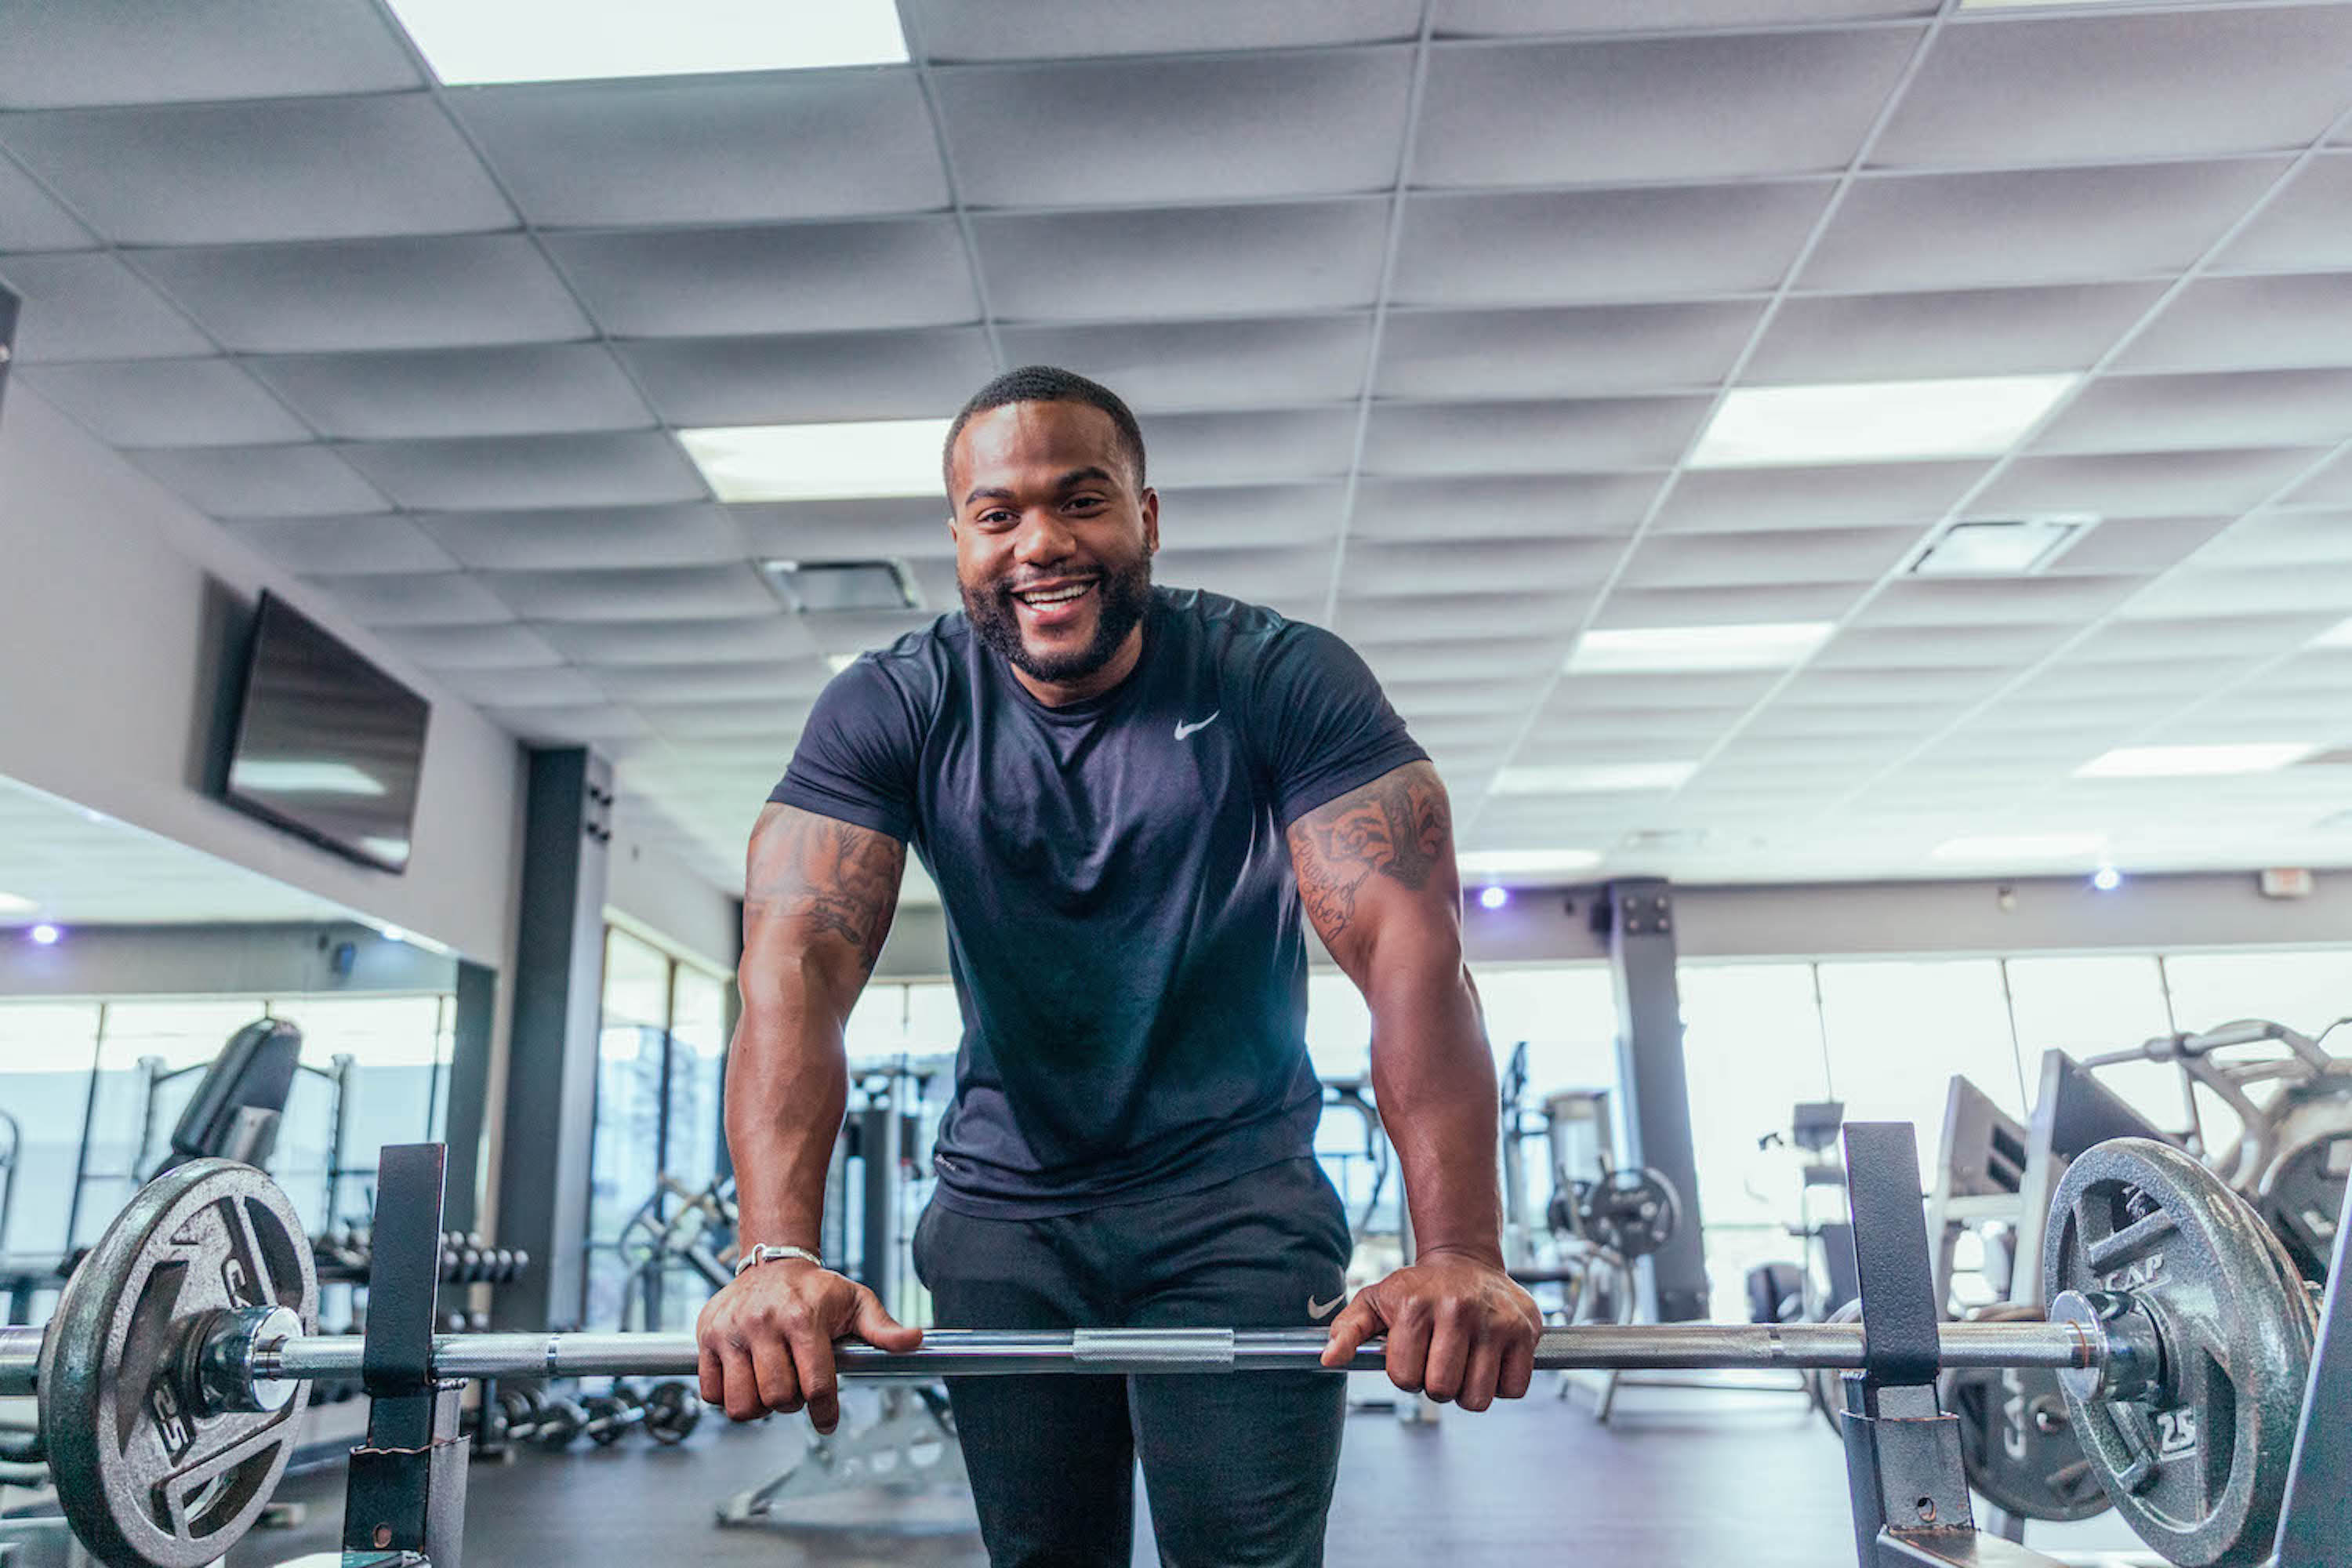 The personal training gym of Mobile, Alabama